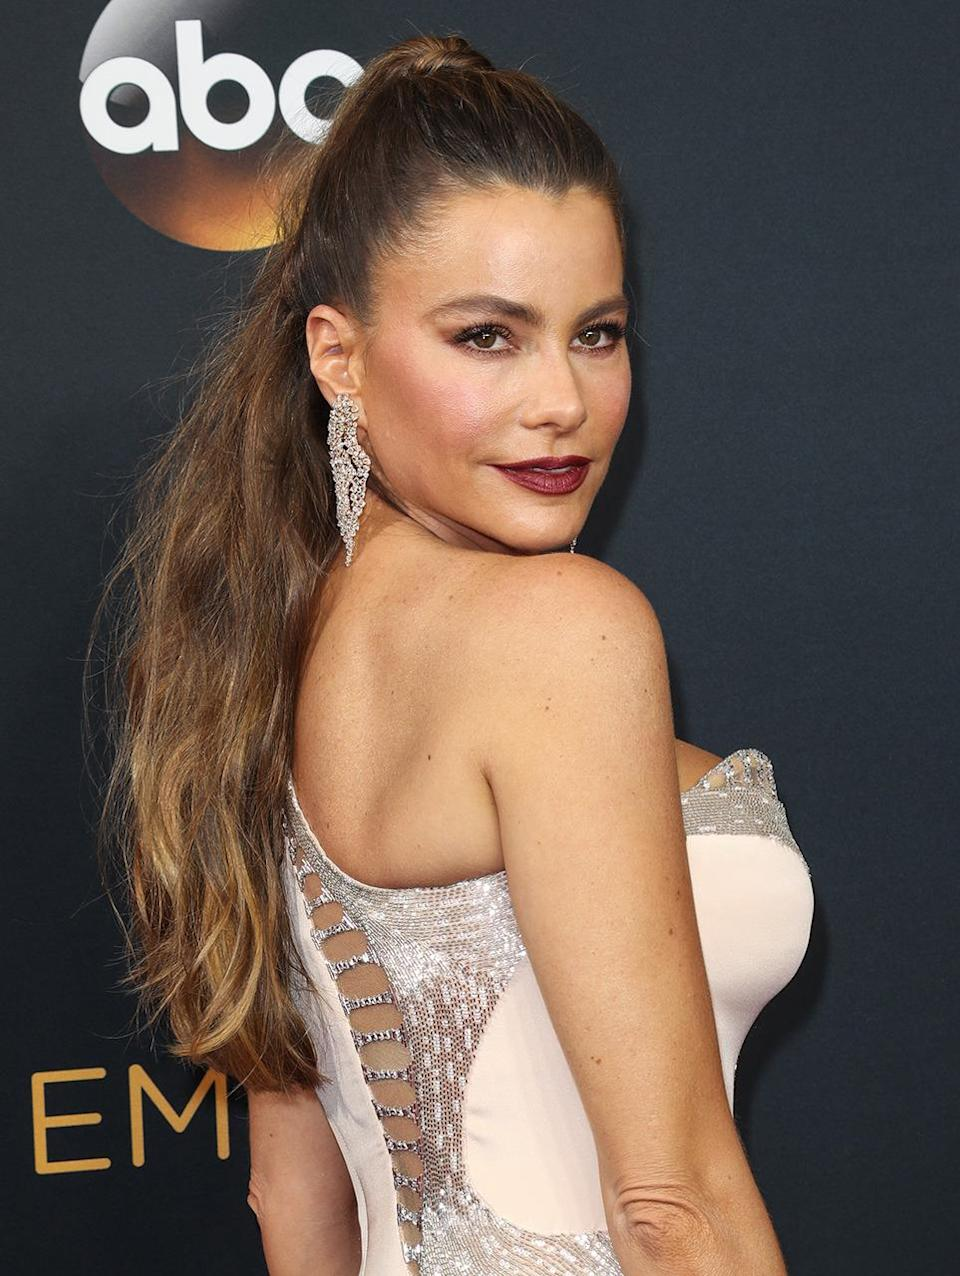 <p><b>Sofia Vergara</b></p><p>The <i>Modern Family</i> star is one woman who can make that <i>I Dream of Jeannie</i> look work for any occasion. (Photo: Rex Features)<br></p>